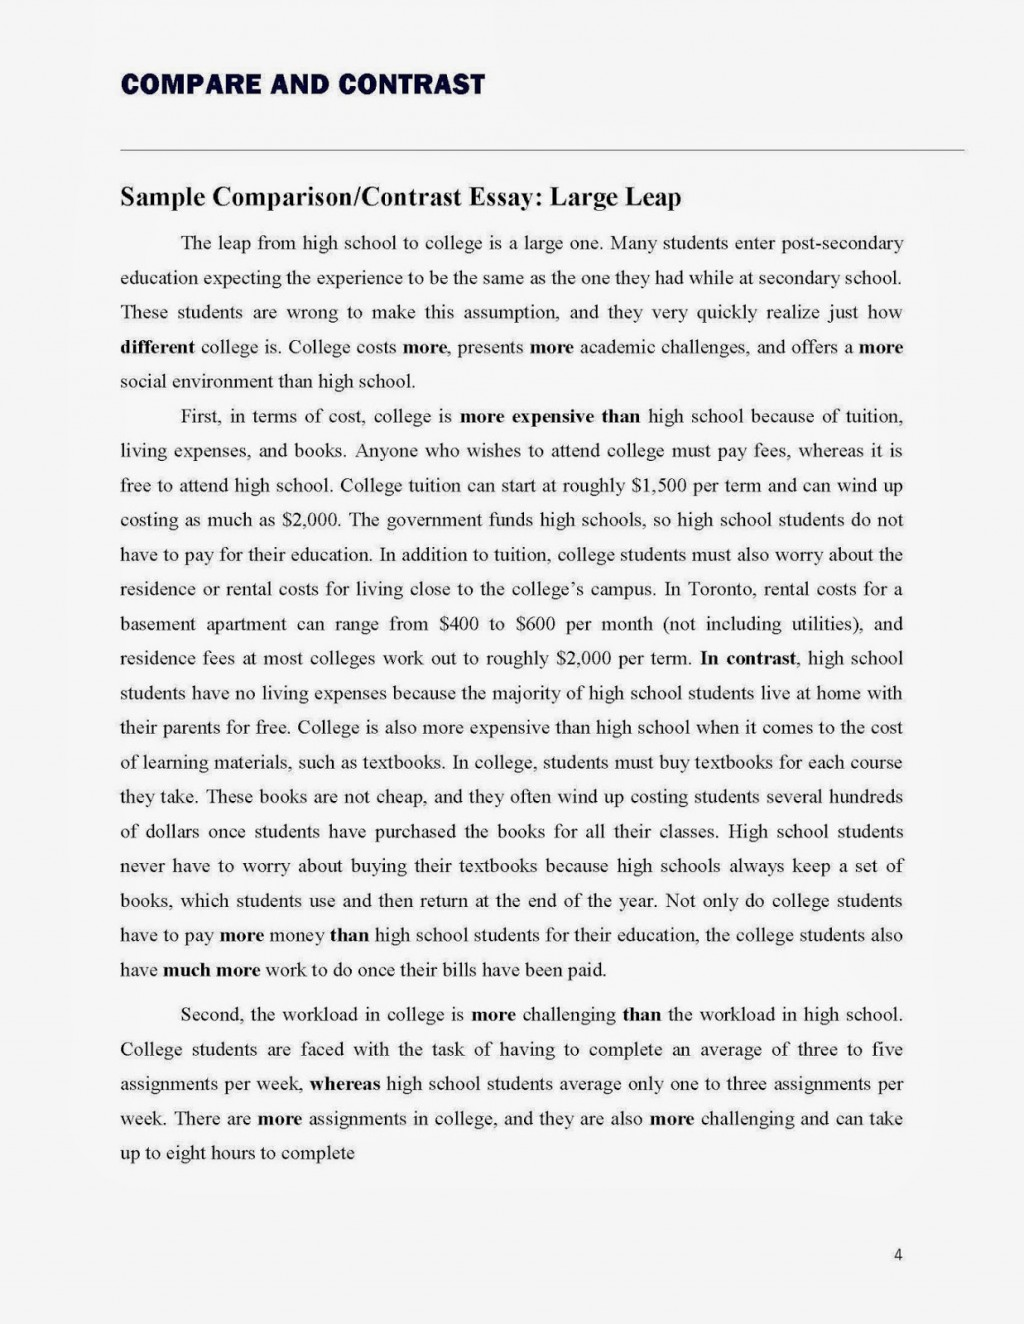 011 Compare And Contrast Essay Compareandcontrastessay Page 4h125 Frightening Examples Elementary Outline For Middle School Introduction Large